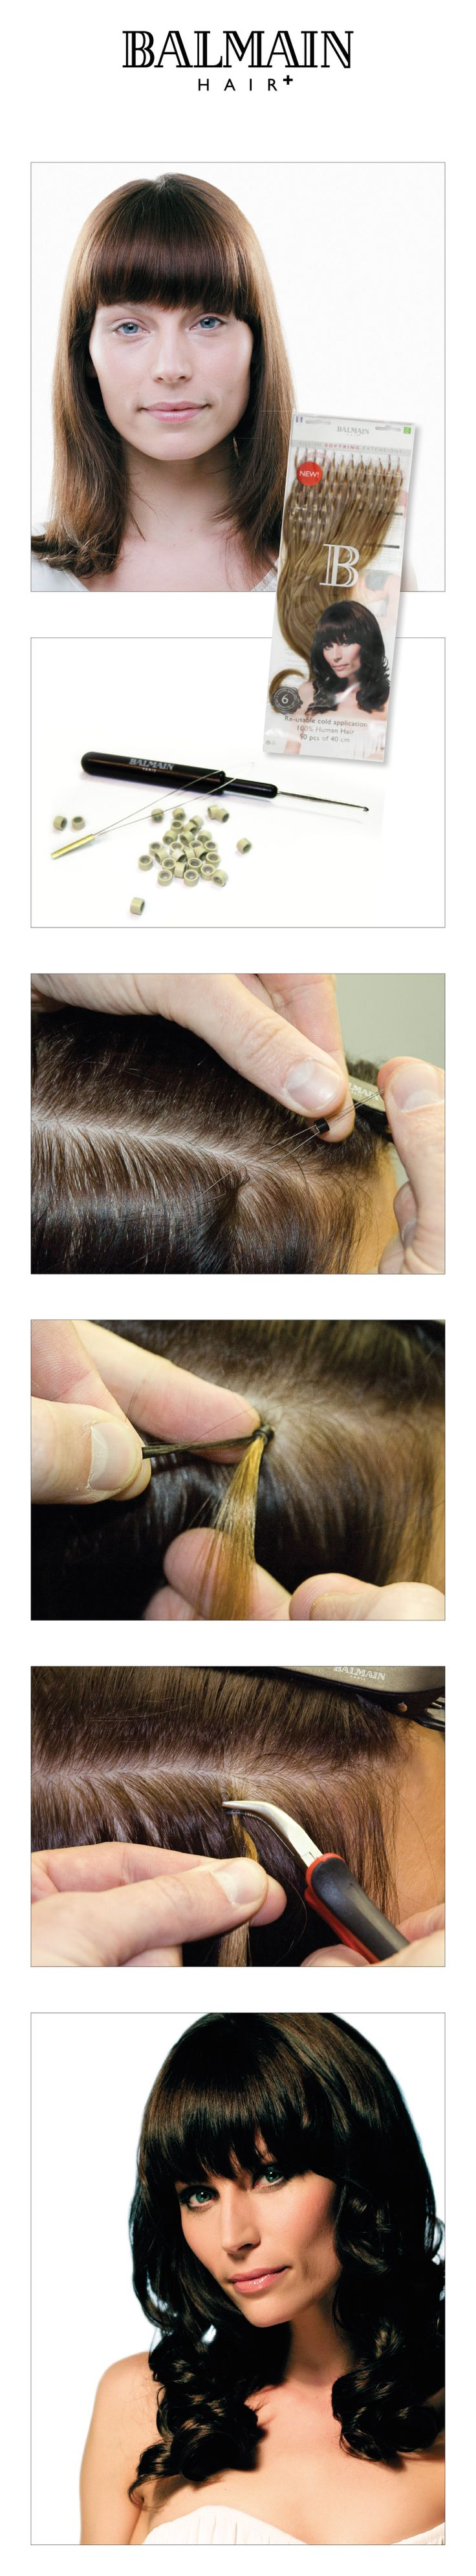 Want to create a fuller hairdo? Use Fill-in Extensions of Balmain Hair!